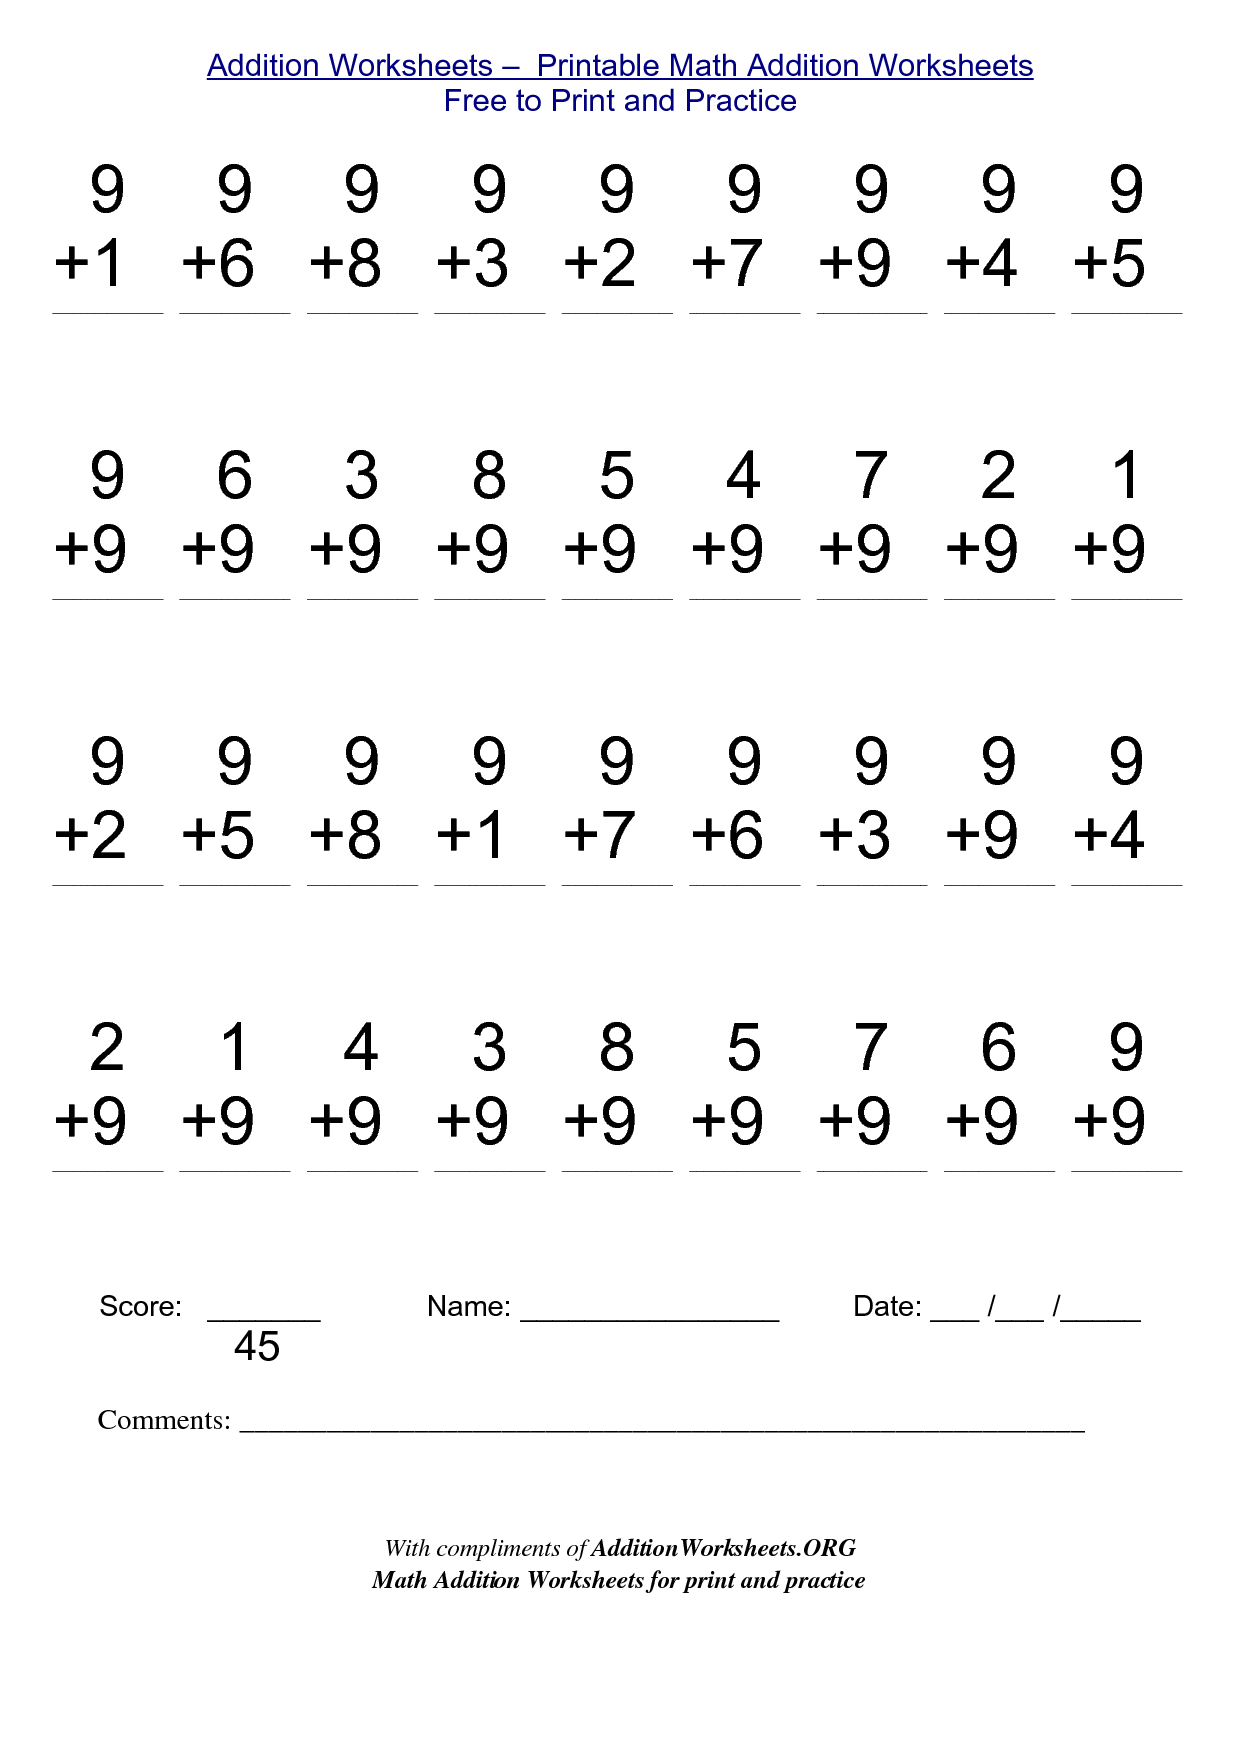 Worksheets Printable Math Worksheets singapore math kindergarten worksheets first grade addition printable free to print